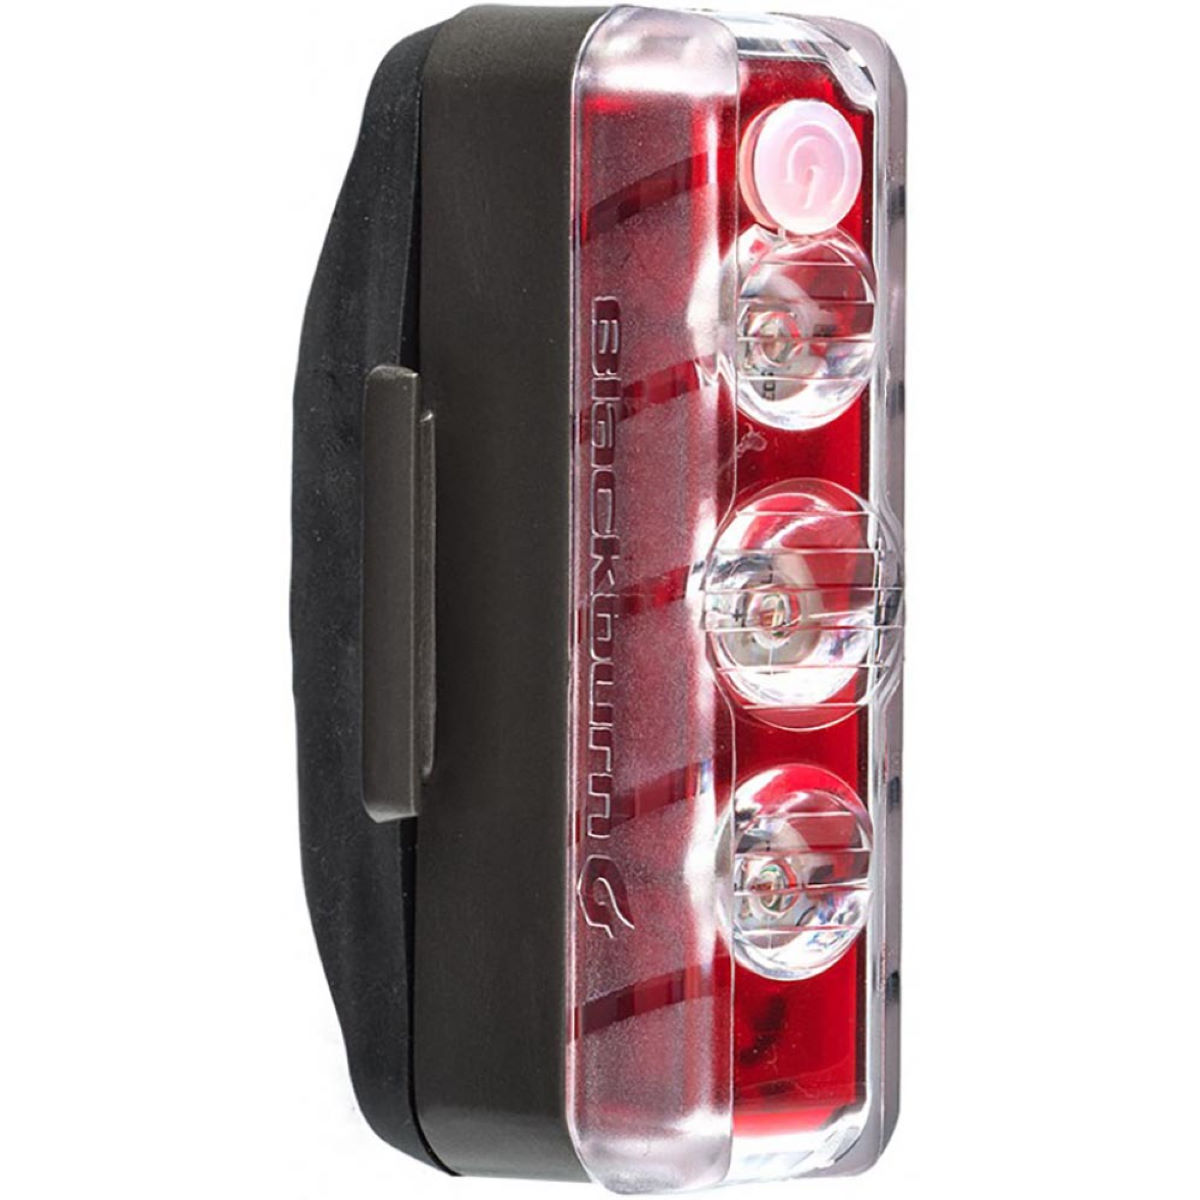 Blackburn Dayblazer 125 Rear Light - Luces traseras